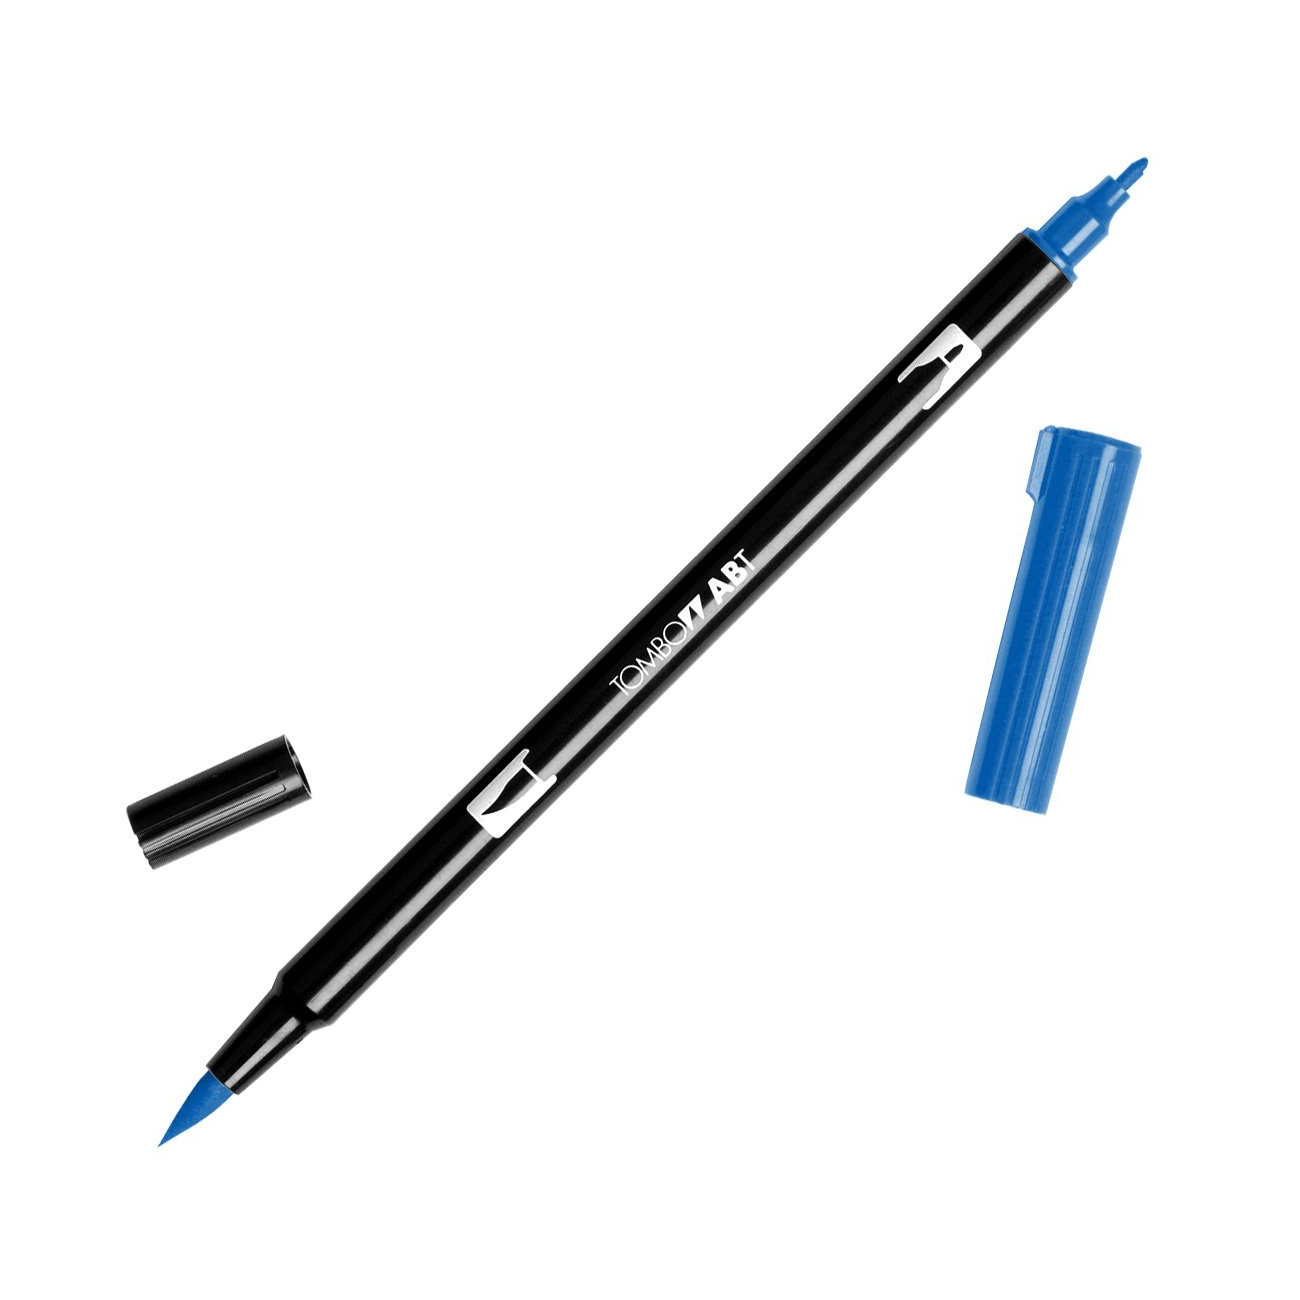 Tombow Dual Brush Pen 555 Ultramarine